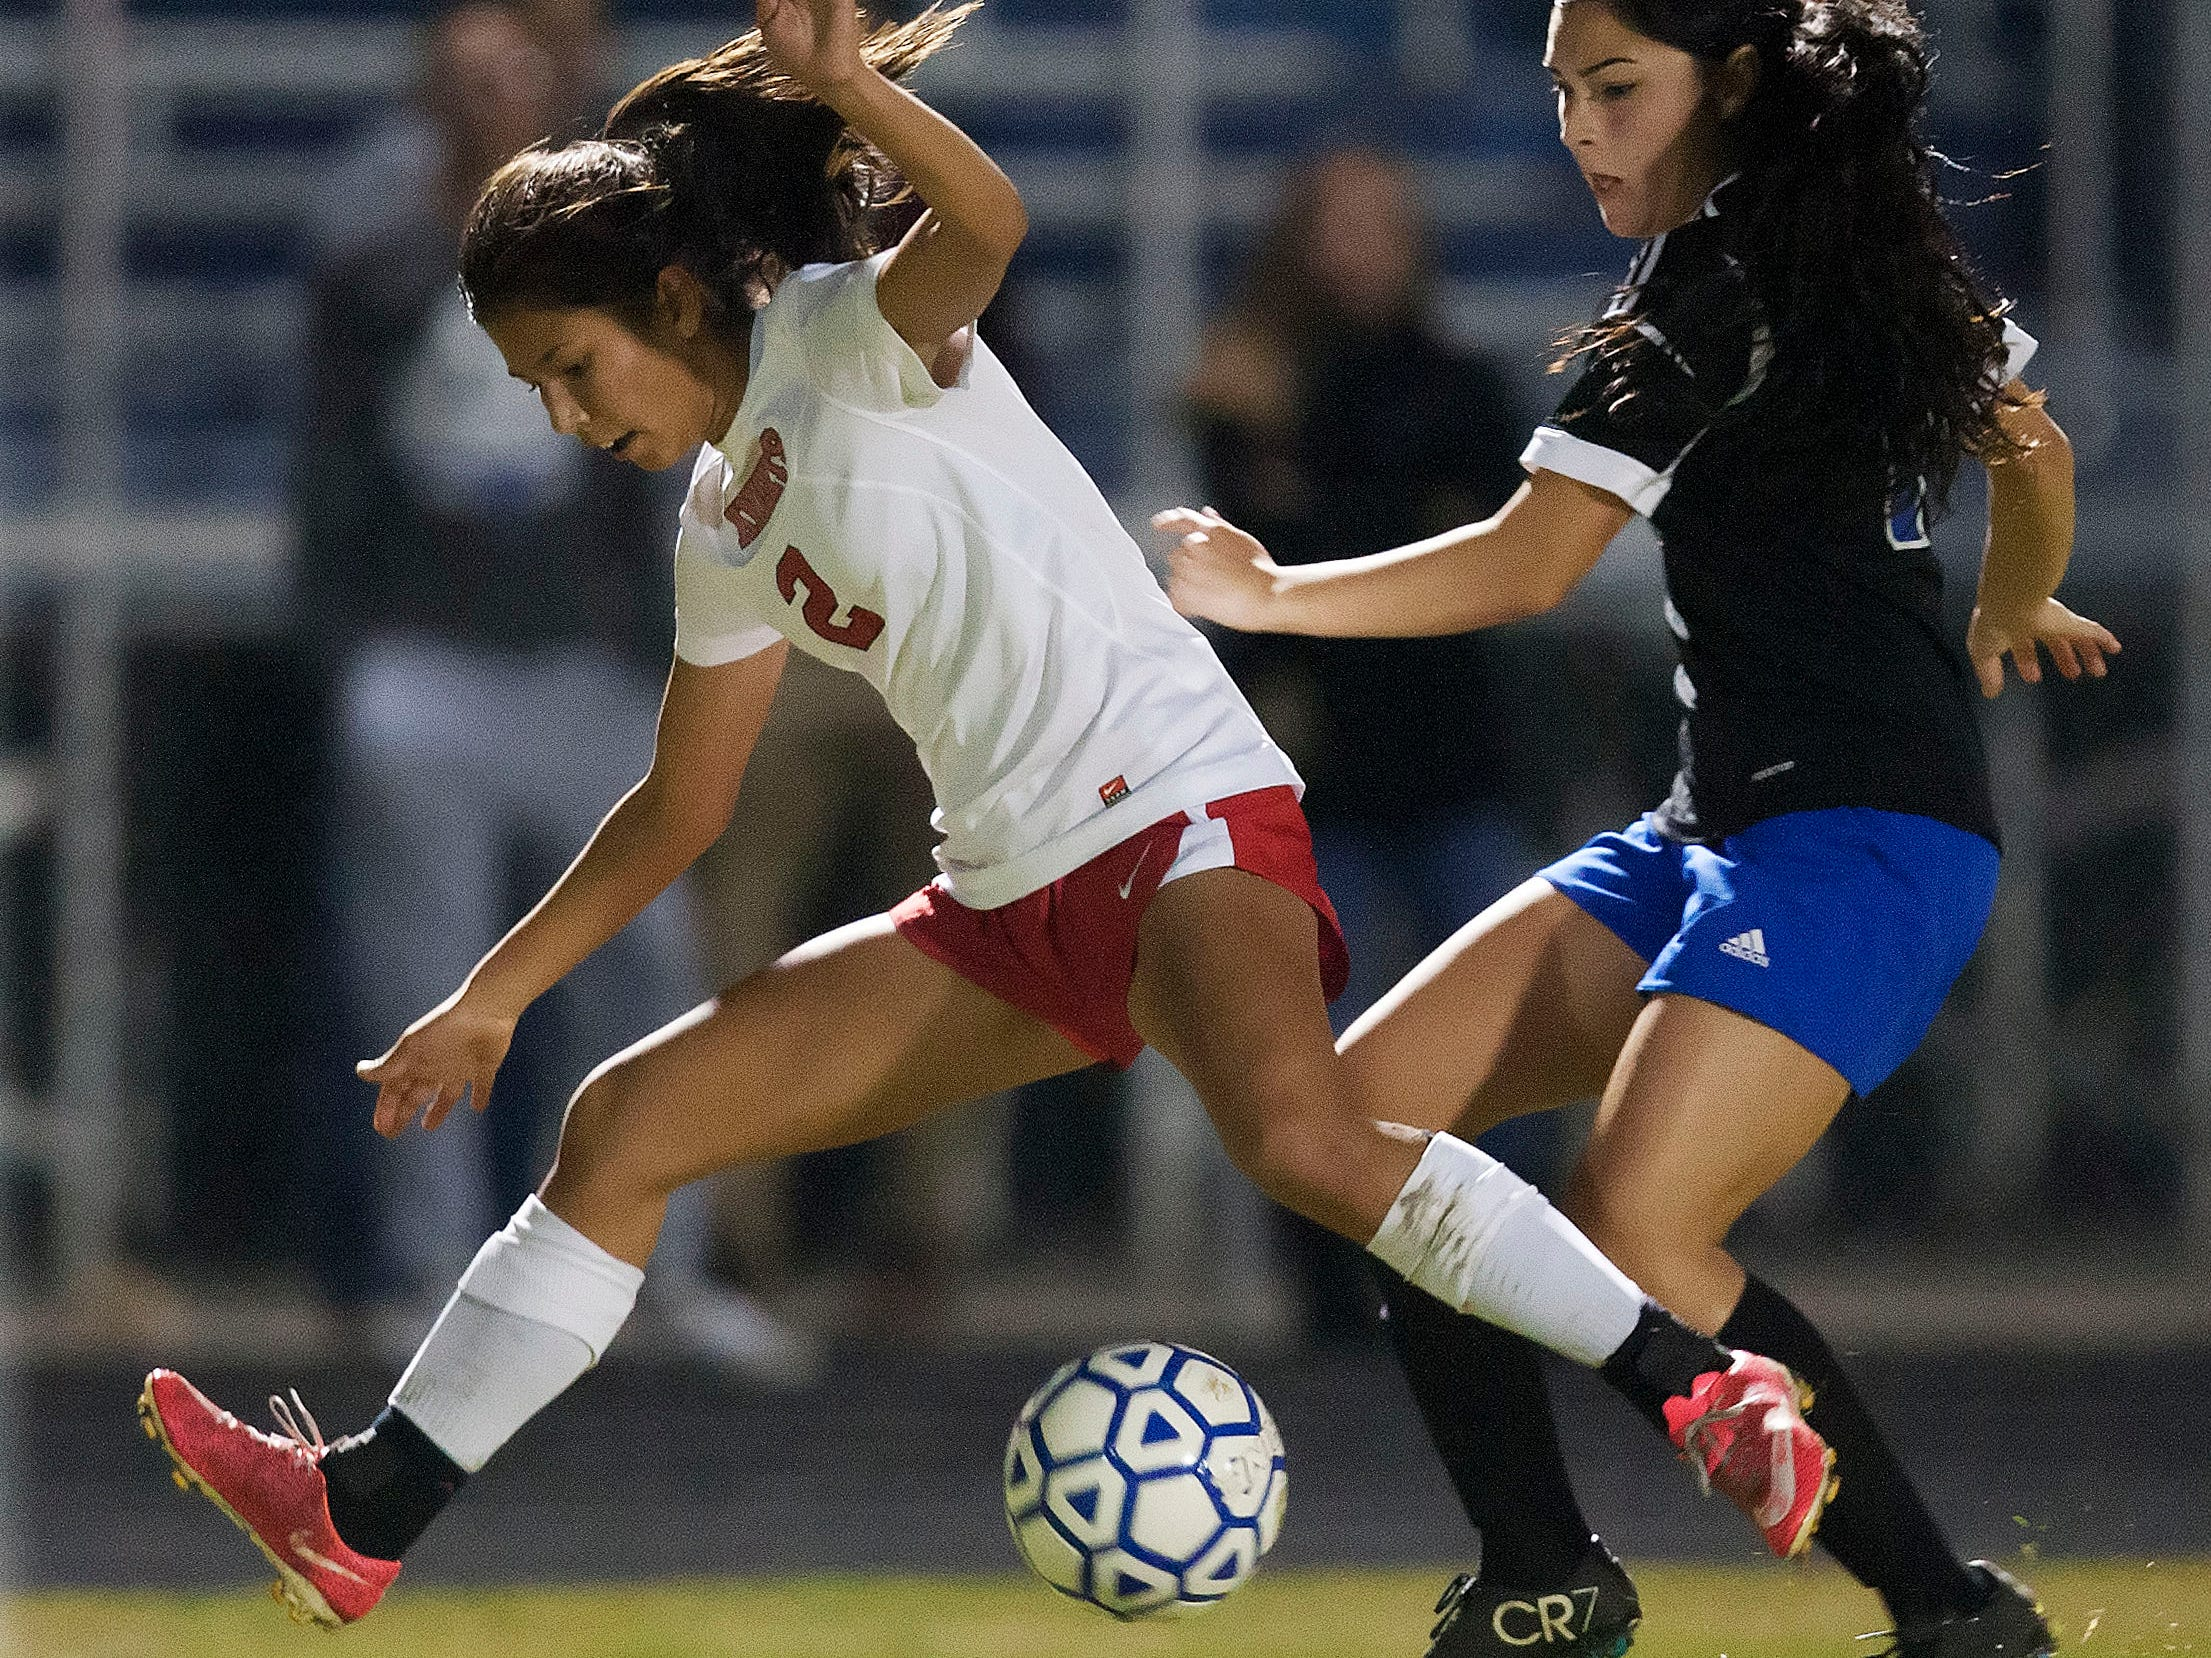 North Fort Myers High School's Makenzi Walden, left, steals the ball from Ida S. Baker's Gabby Hallnan during the District 3A-13 girls soccer final Friday at Ida S. Baker High School in Cape Coral.